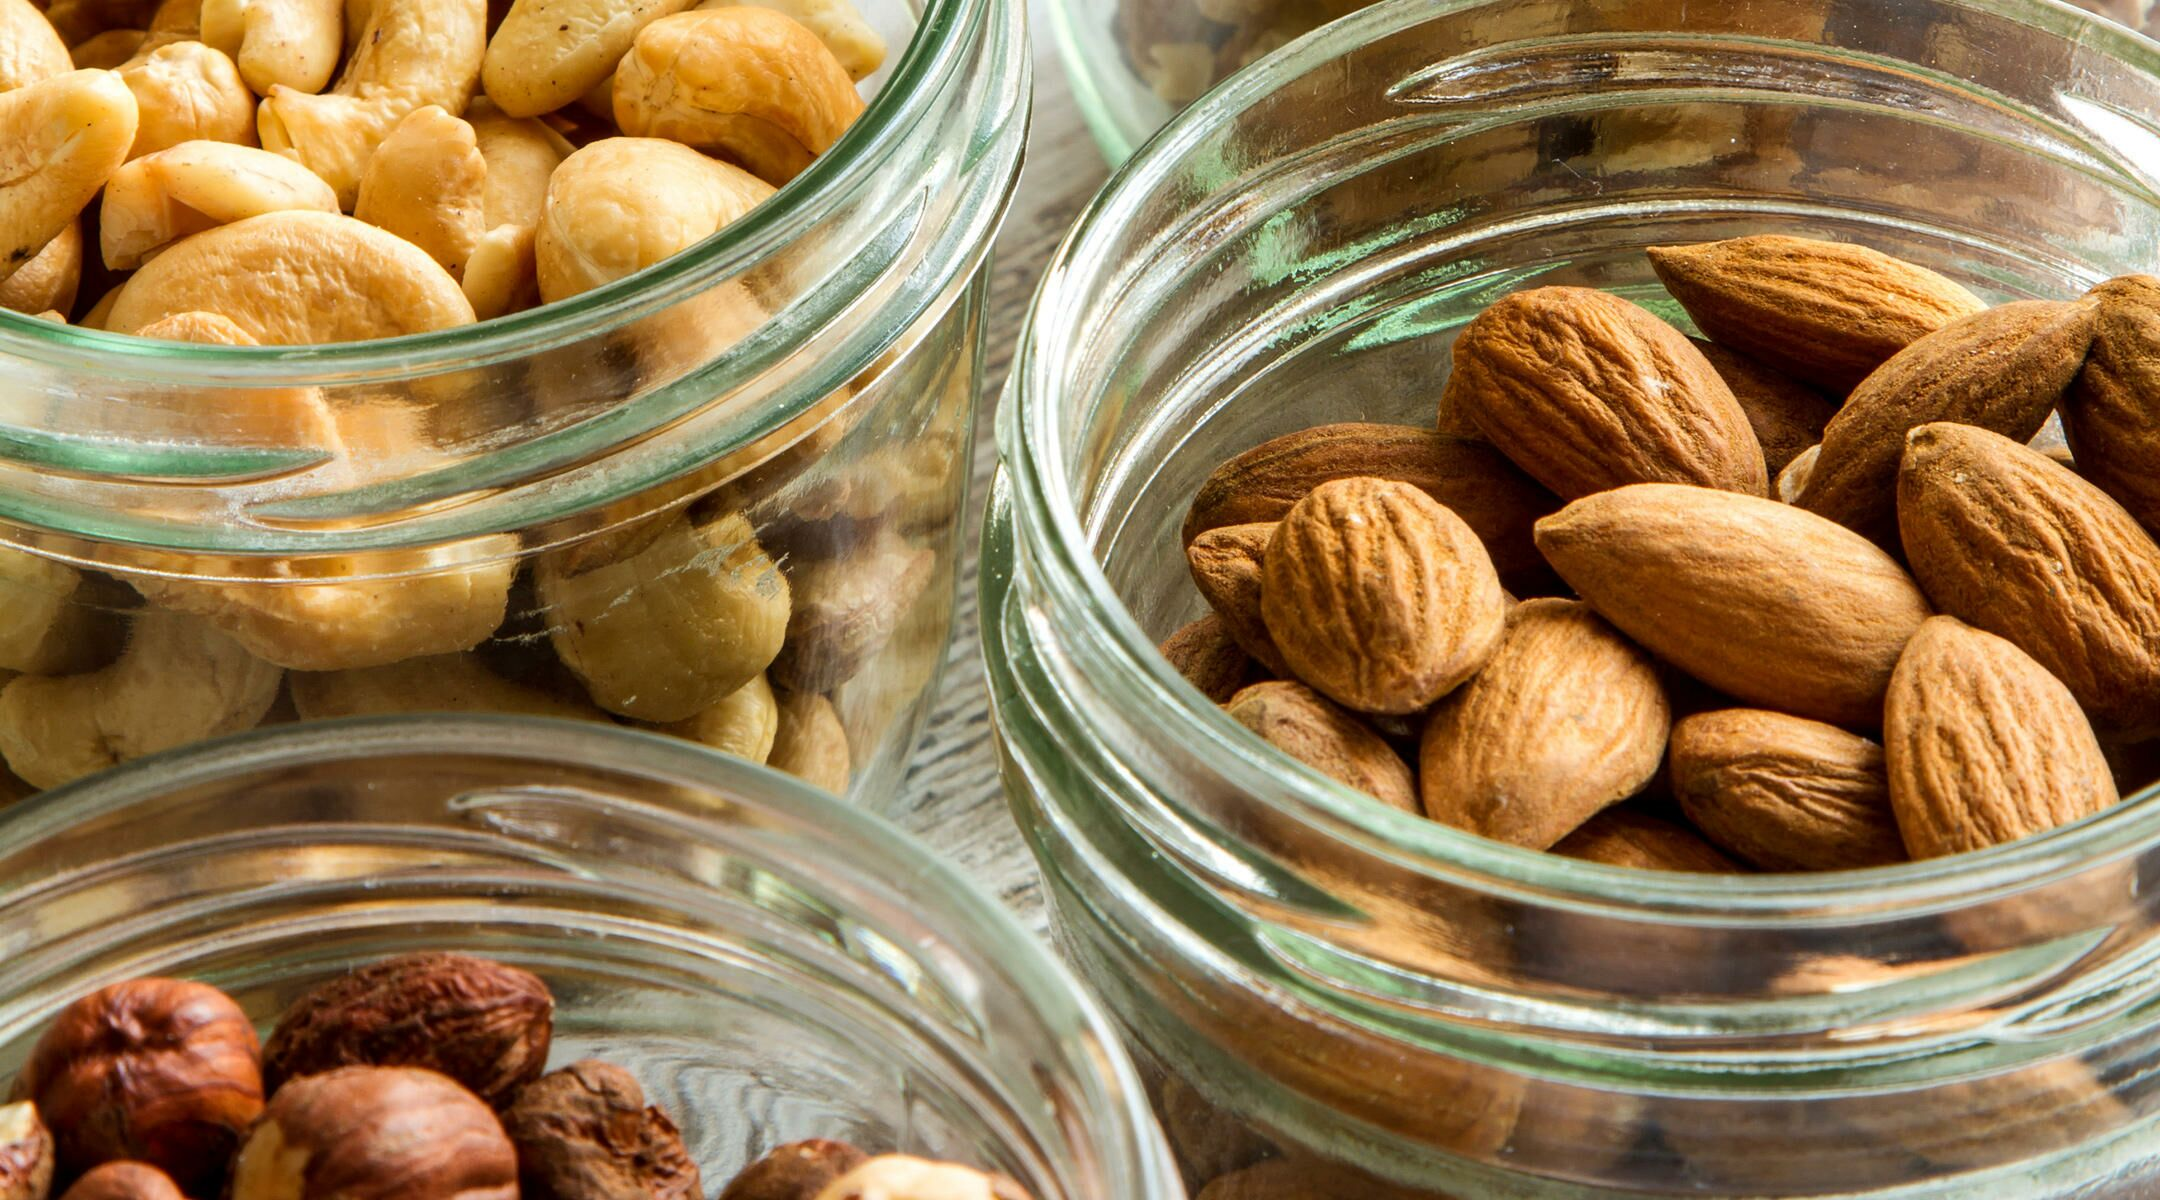 Pregnant? Eating Nuts Now Could Mean Fewer Allergies ForBaby!